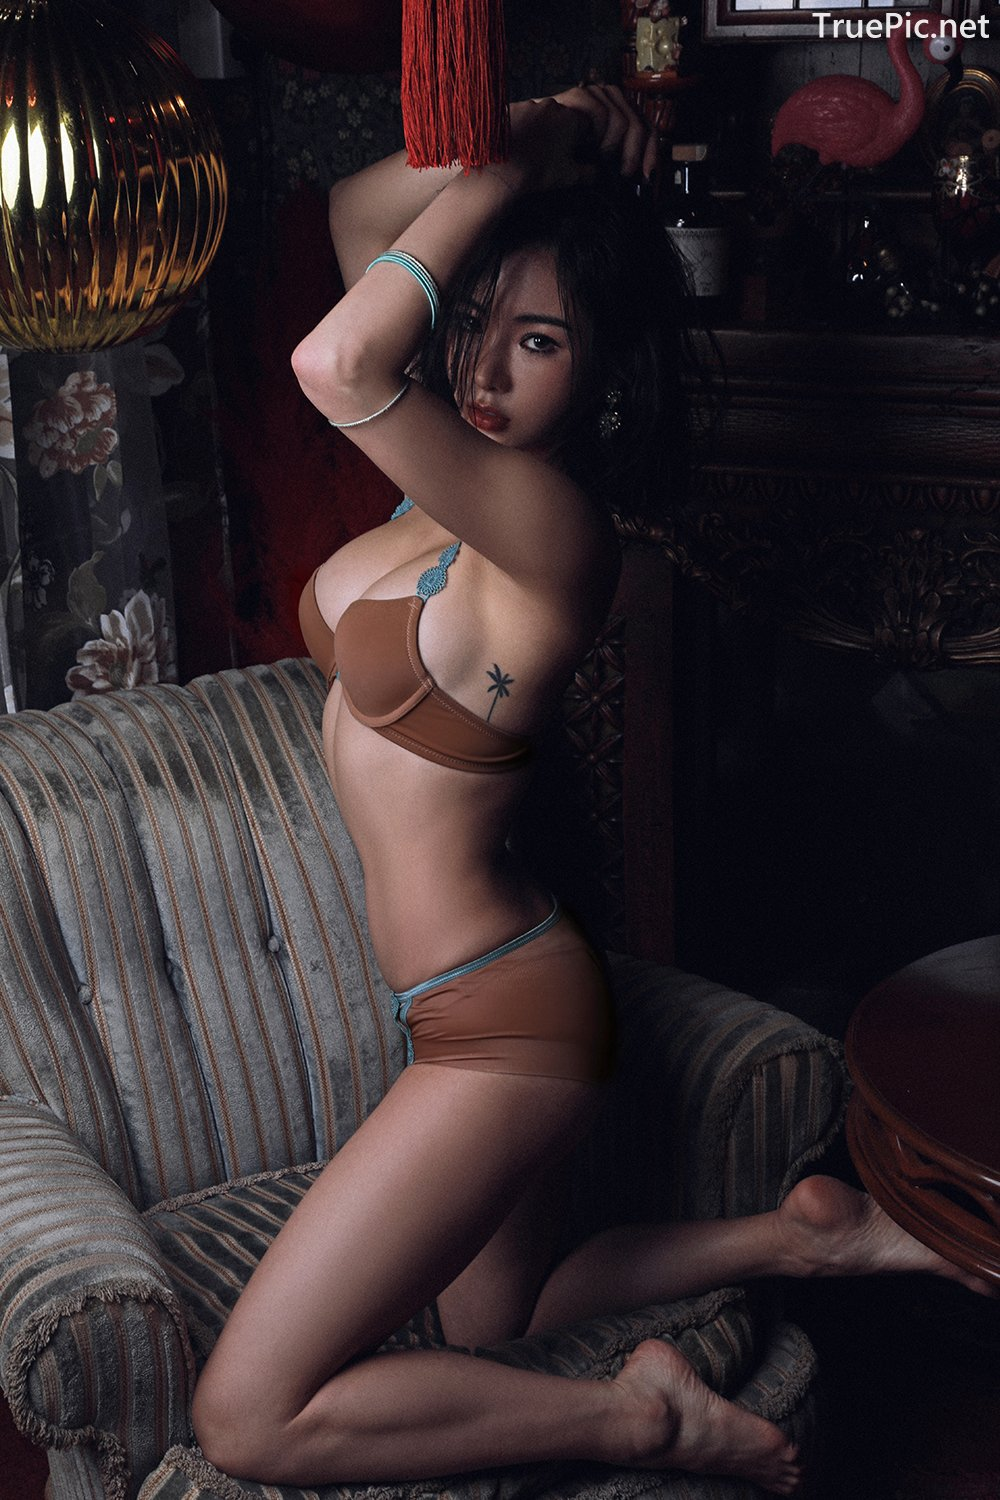 Image-An-Seo-Rin-Brown-and-Red-Lingerie-Korean-Model-Fashion-TruePic.net- Picture-7